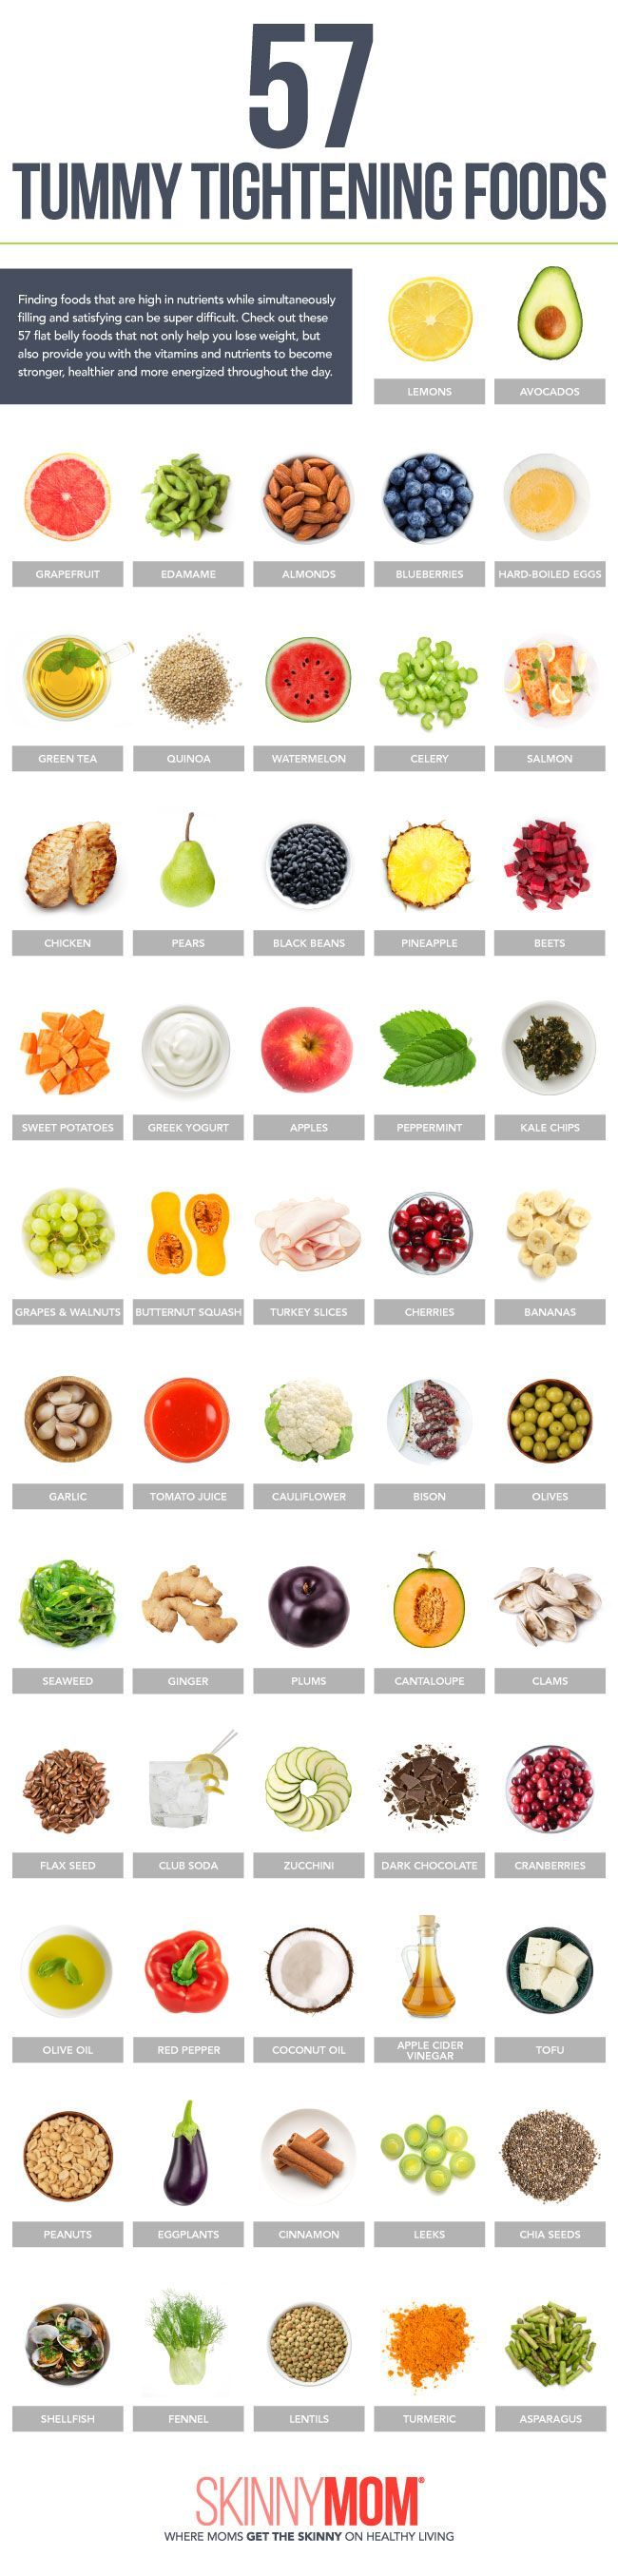 cool How Many of These Tummy Tightening Foods Do You Eat? Read more in: http://natureandhealth.net/